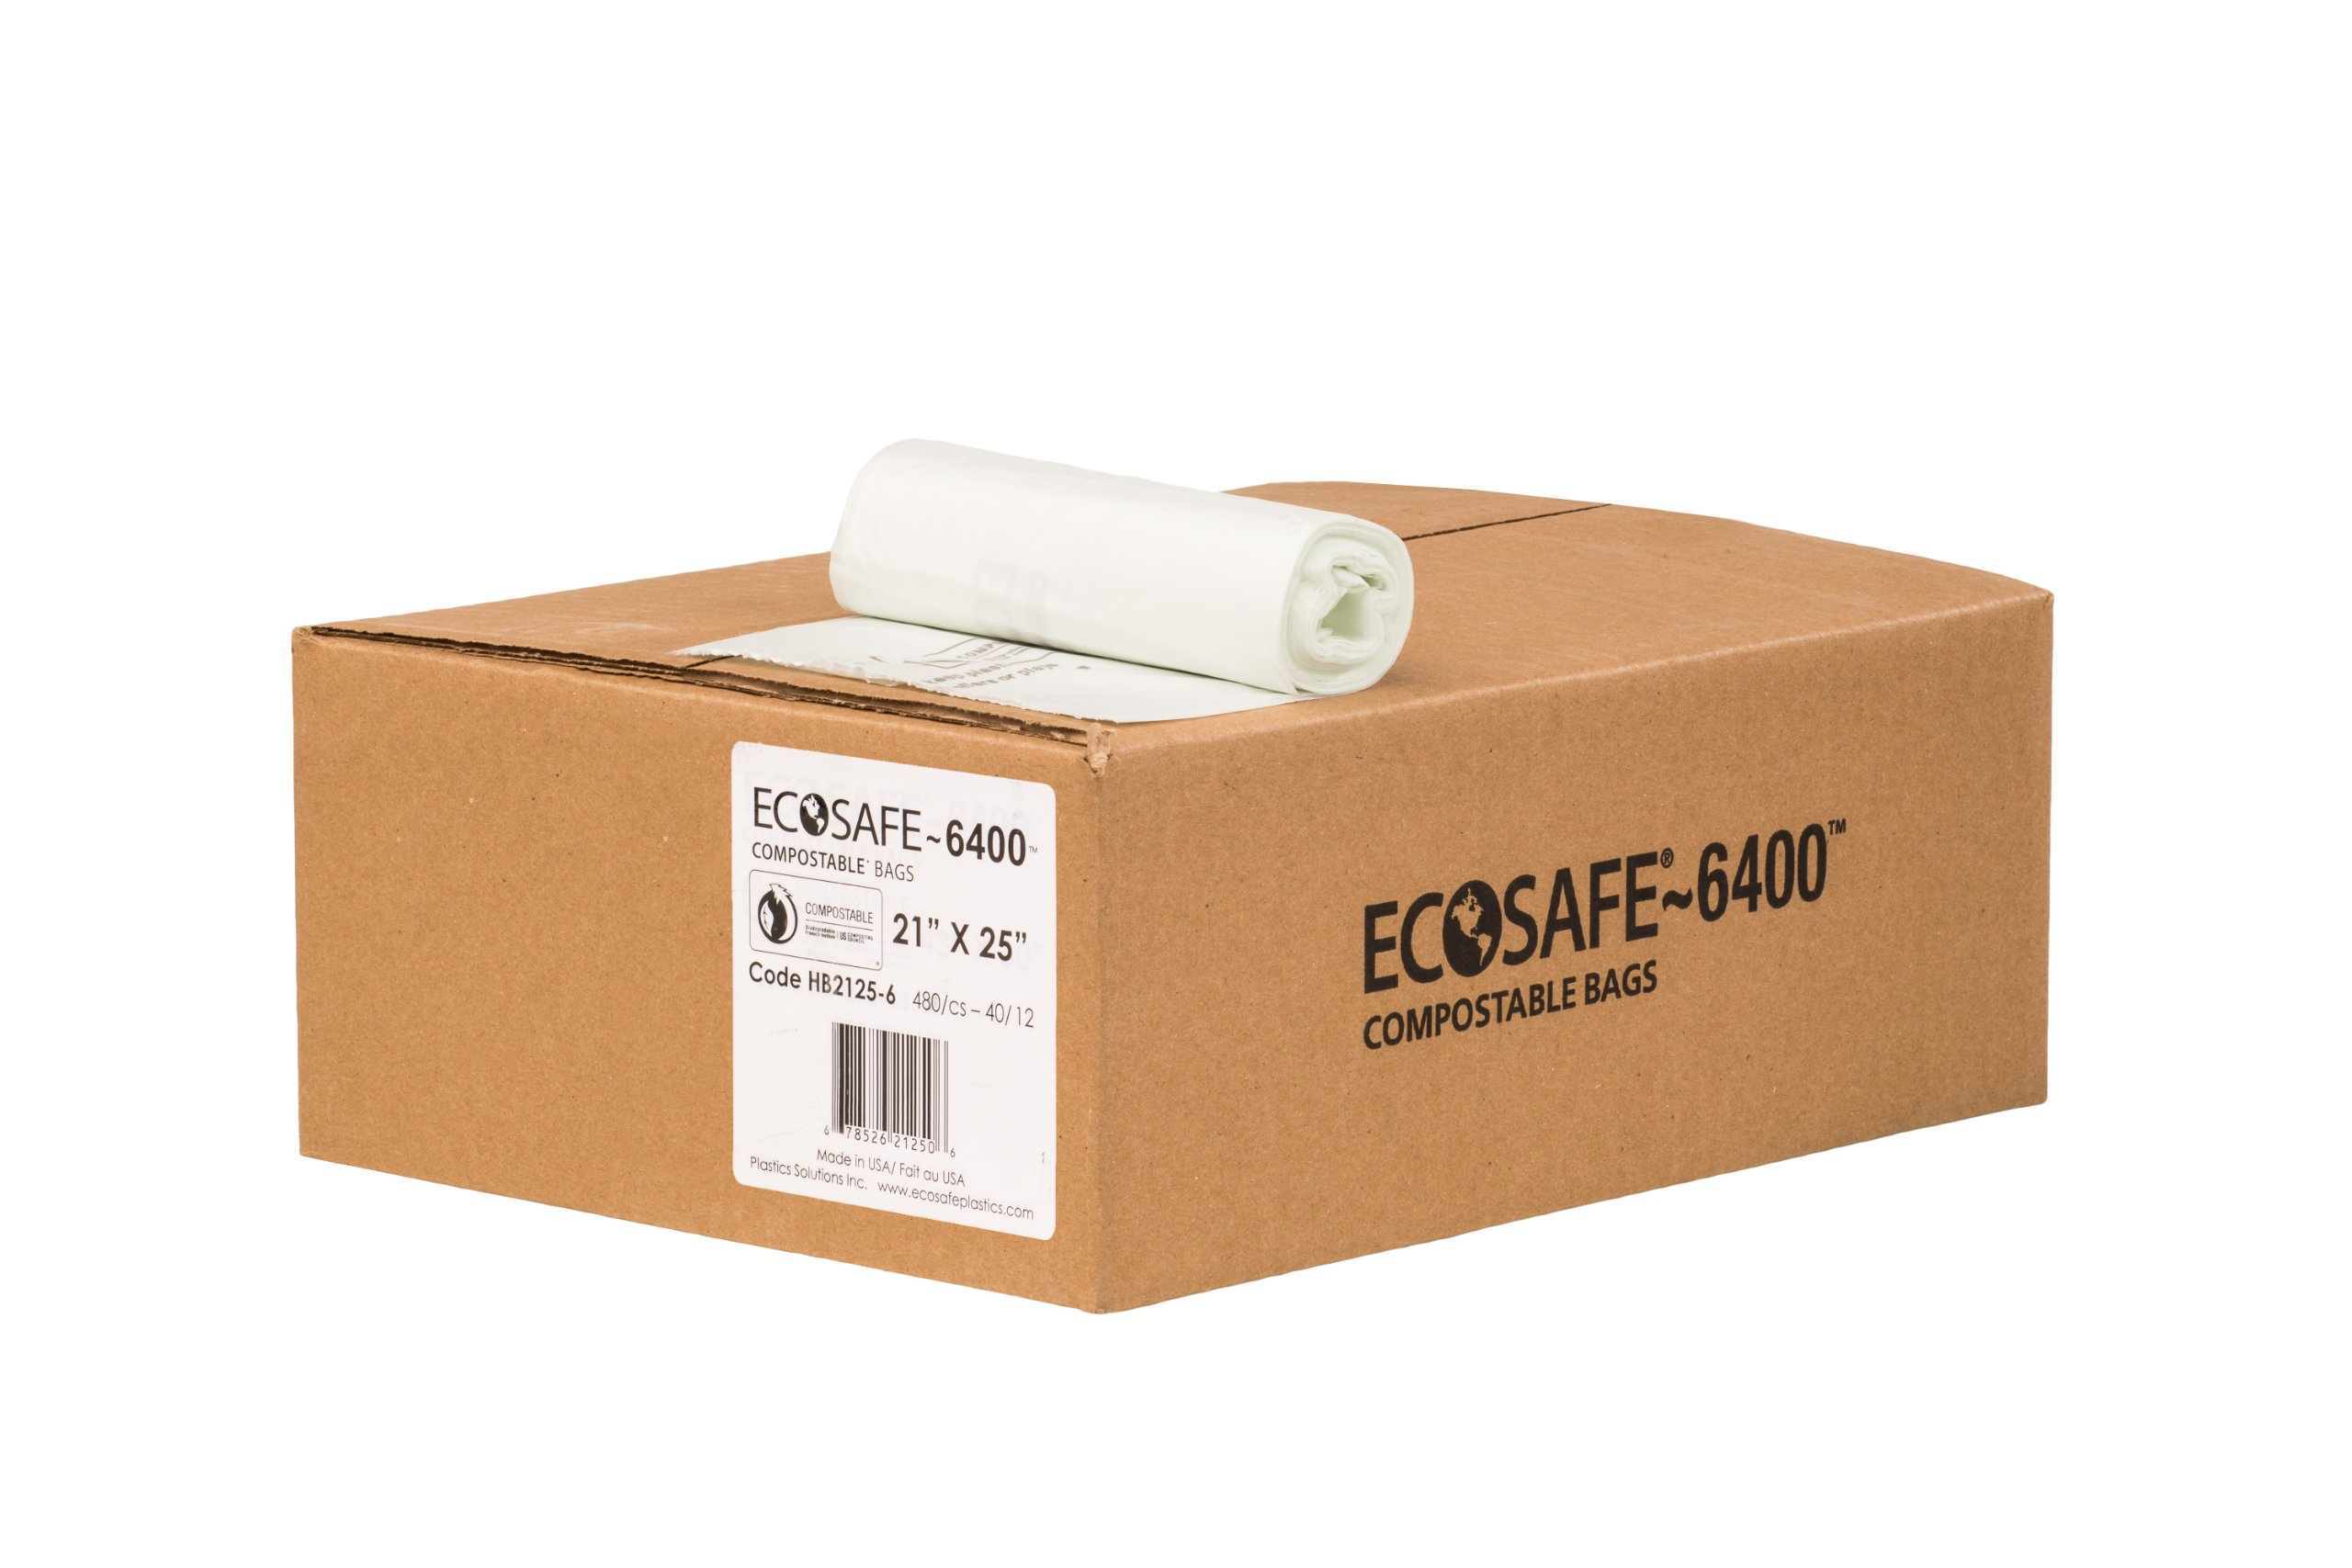 EcoSafe-6400 HB2125-6 Compostable Bag, Certified Compostable, 8-Gallon, Green (Pack of 480)